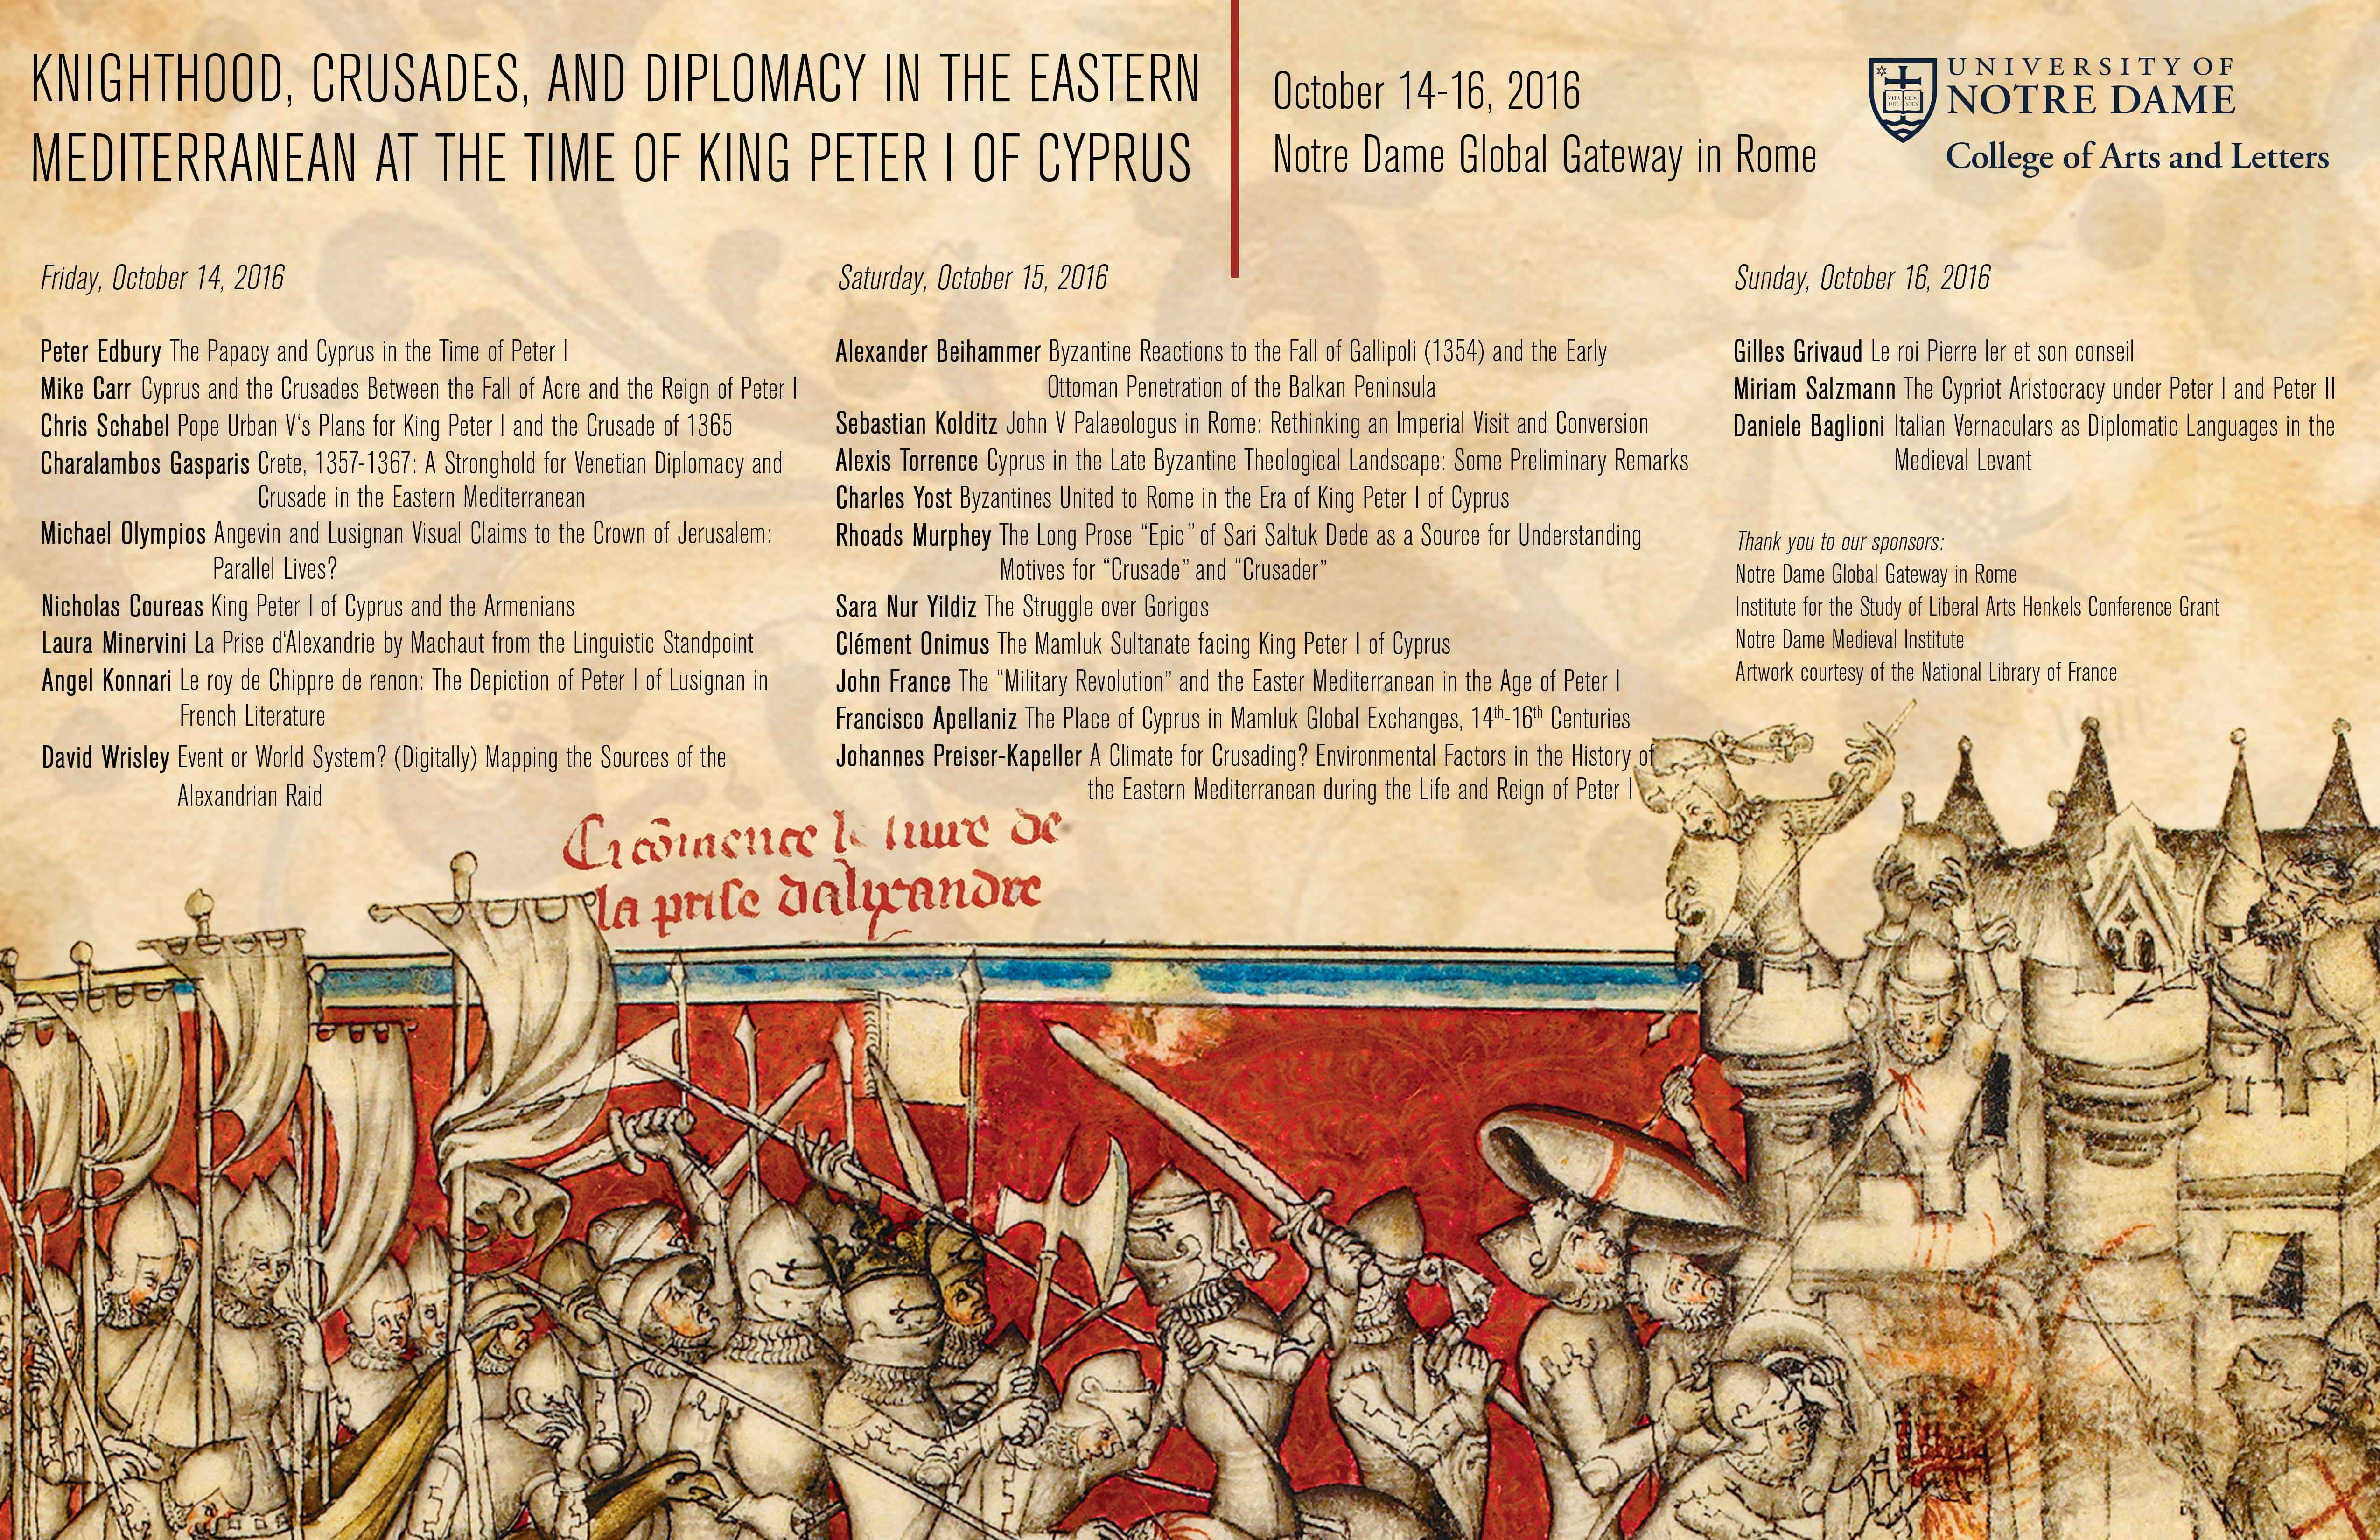 art and architecture of the crusades history essay Islamic art was widely imported and admired by european elites during the middle ages there was an early formative stage from 600-900 and the development of regional styles from 900 onwards.